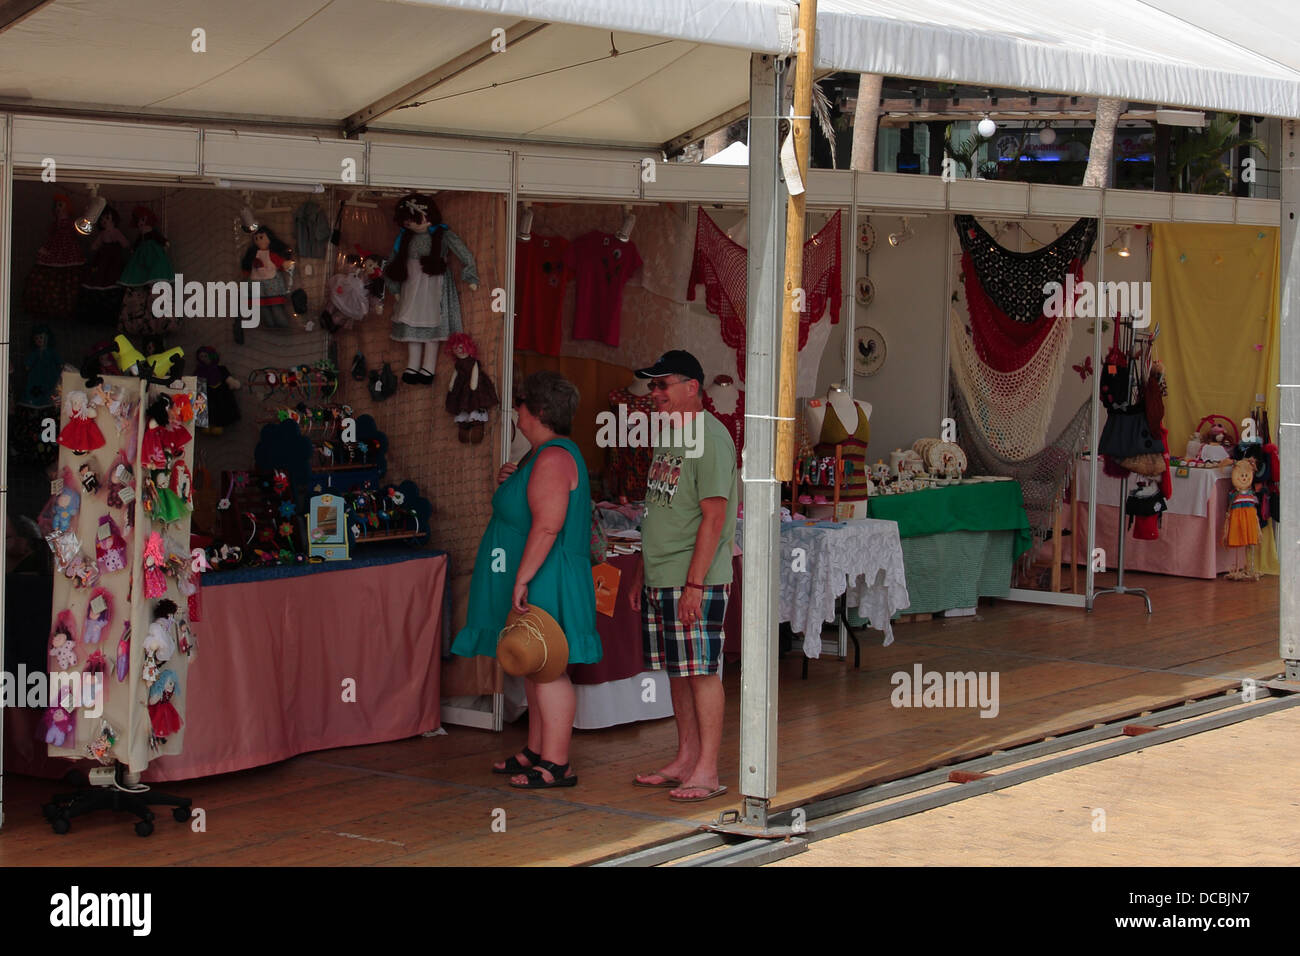 A couple visiting an open air, local arts and crafts fair. - Stock Image